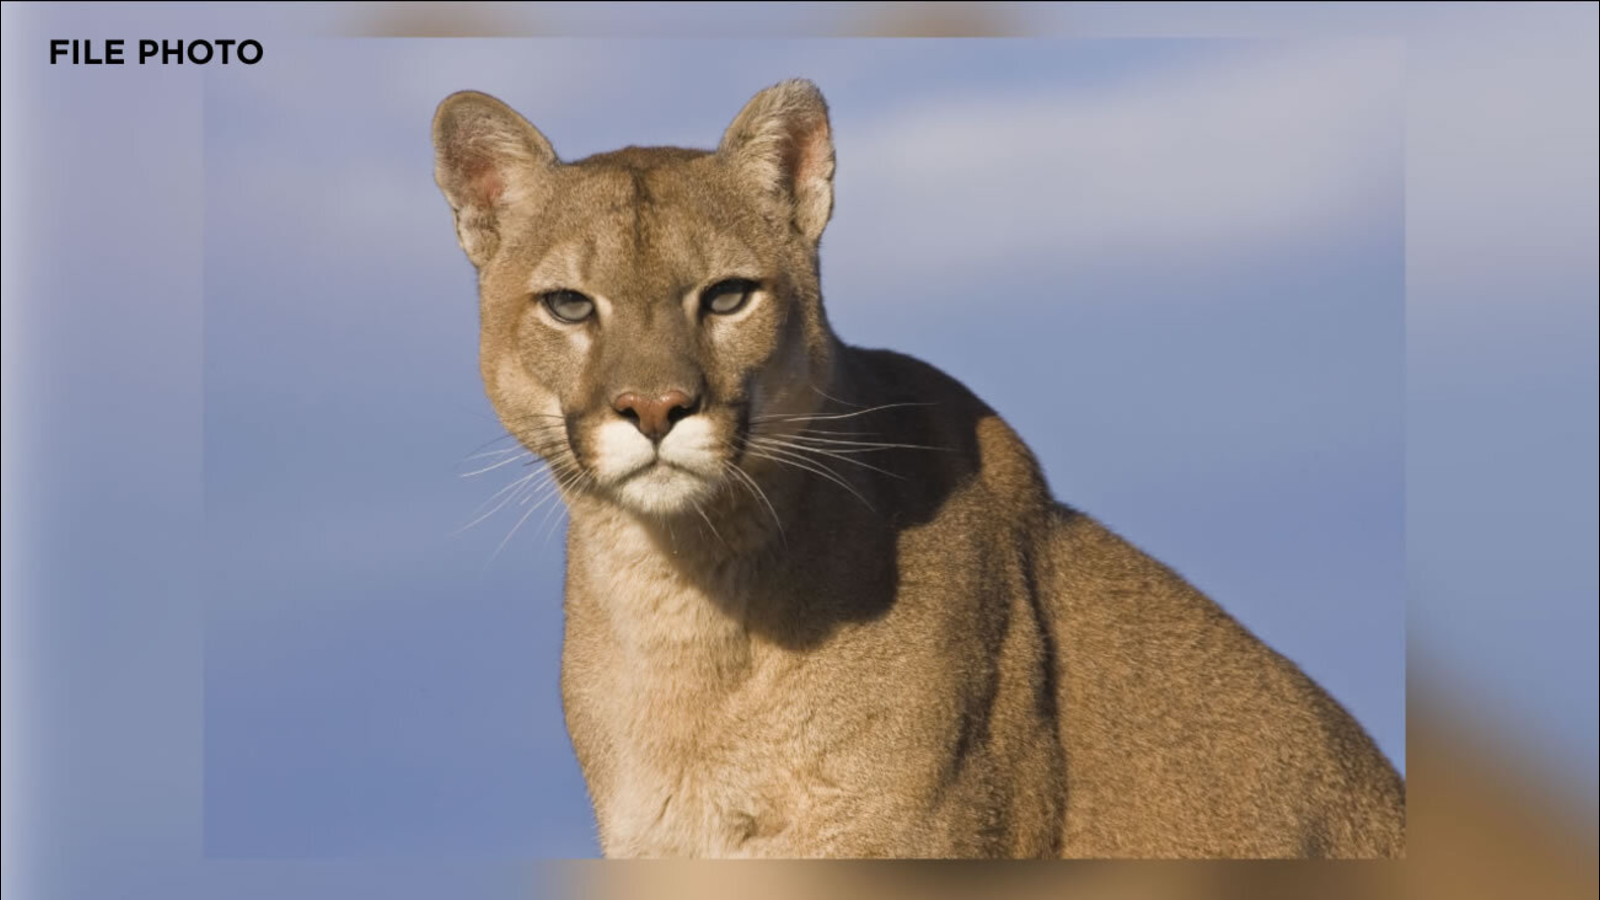 Mountain lion likely killed Fairfield resident's animals, sheriff's officials say